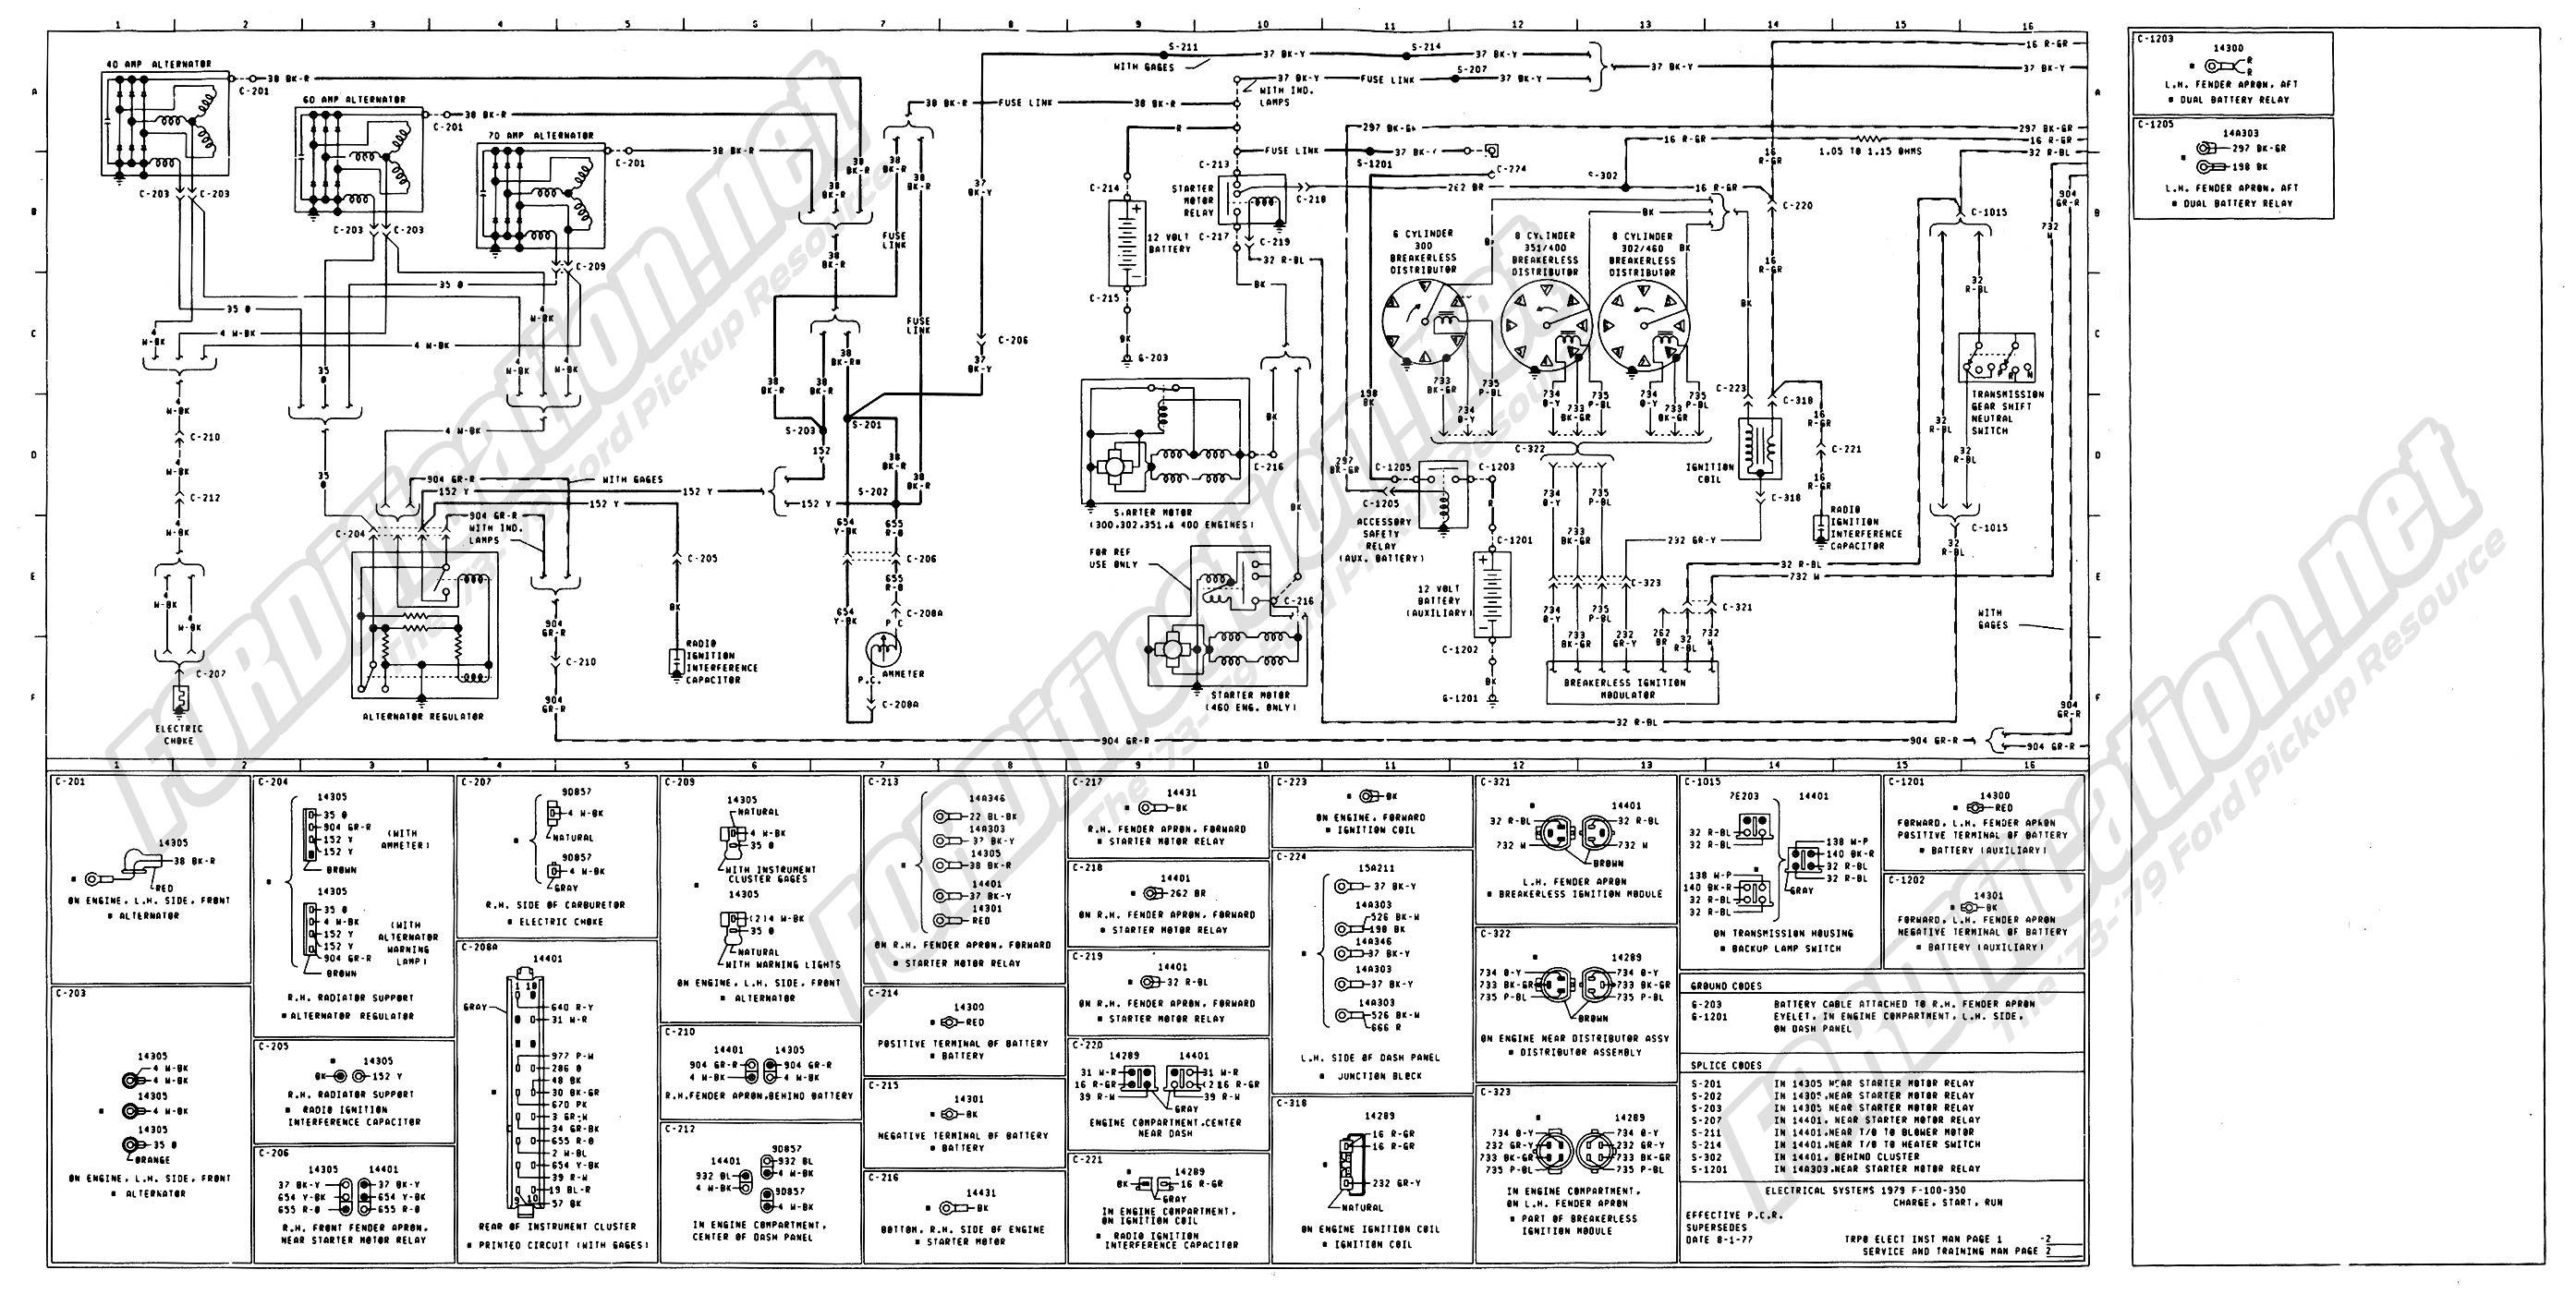 2008 ford mustang wiring schematics - general wiring diagram pipe-balance-a  - pipe-balance-a.justrollingwith.it  just rolling with it